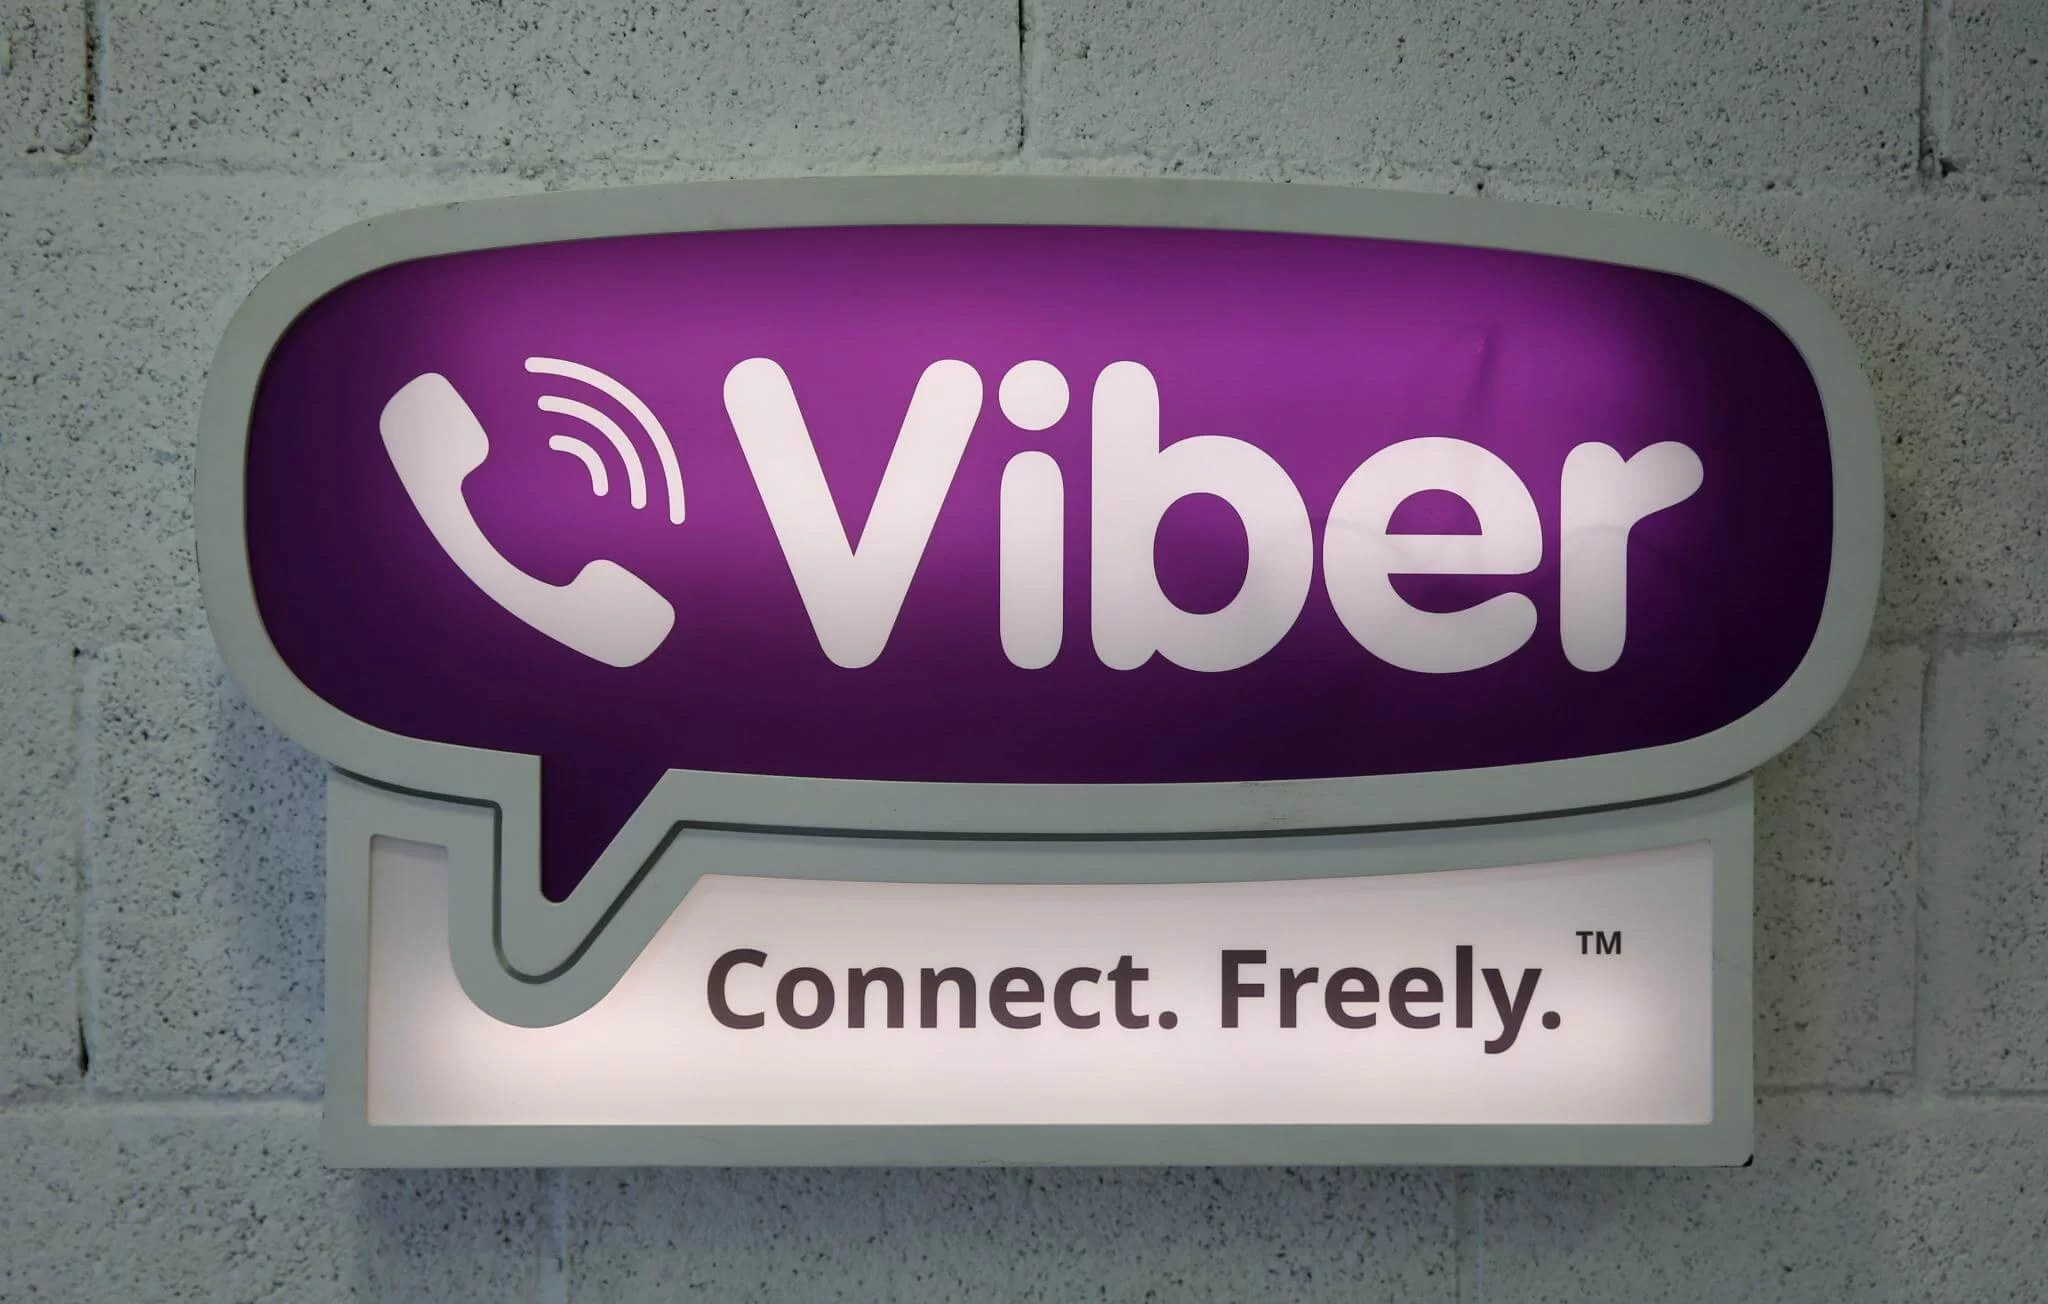 Viber Sign Up - How to Sign Up Viber | Create Viber Account